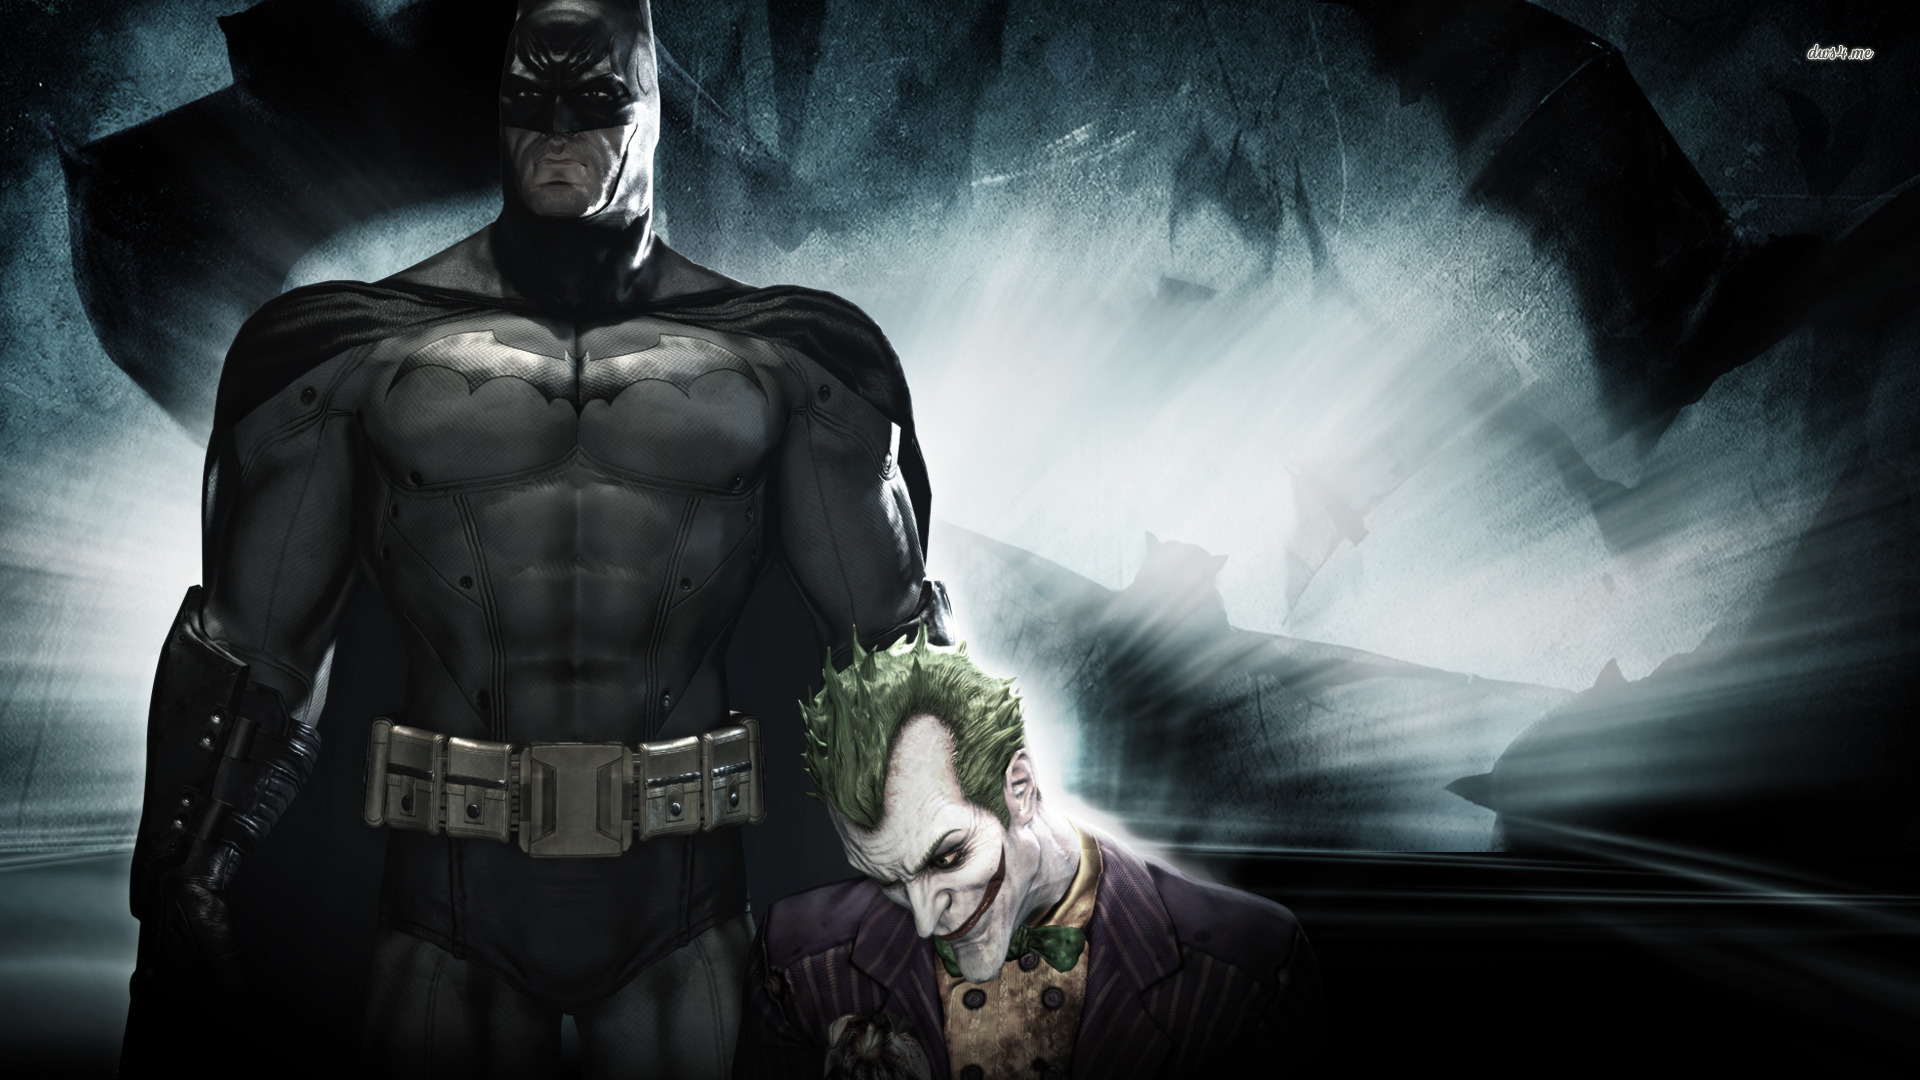 Batman and Joker Wallpaper for Desktop (3)